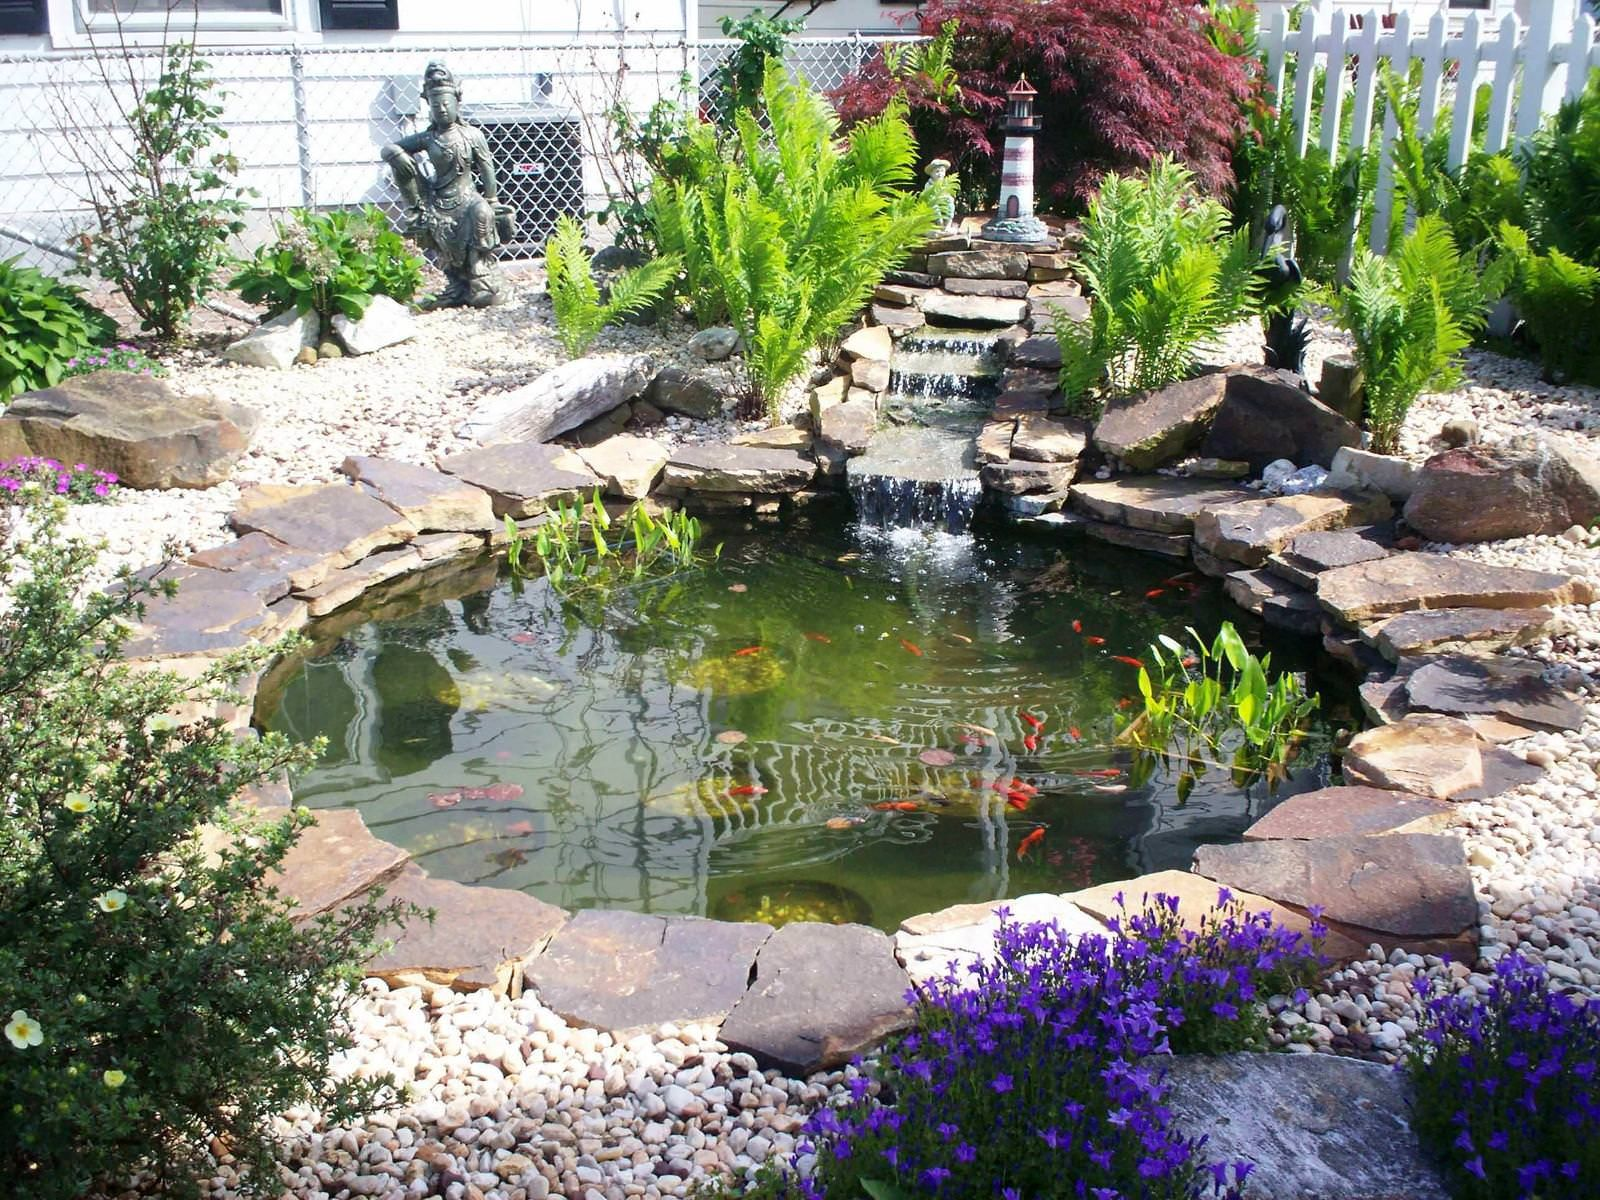 Small Backyard Pond Designs small pond waterfall ideas edition ideas for the smaller yards that Small Garden Or Backyard Aquarium Ideas Practic Ideas Best Home Design Ideas